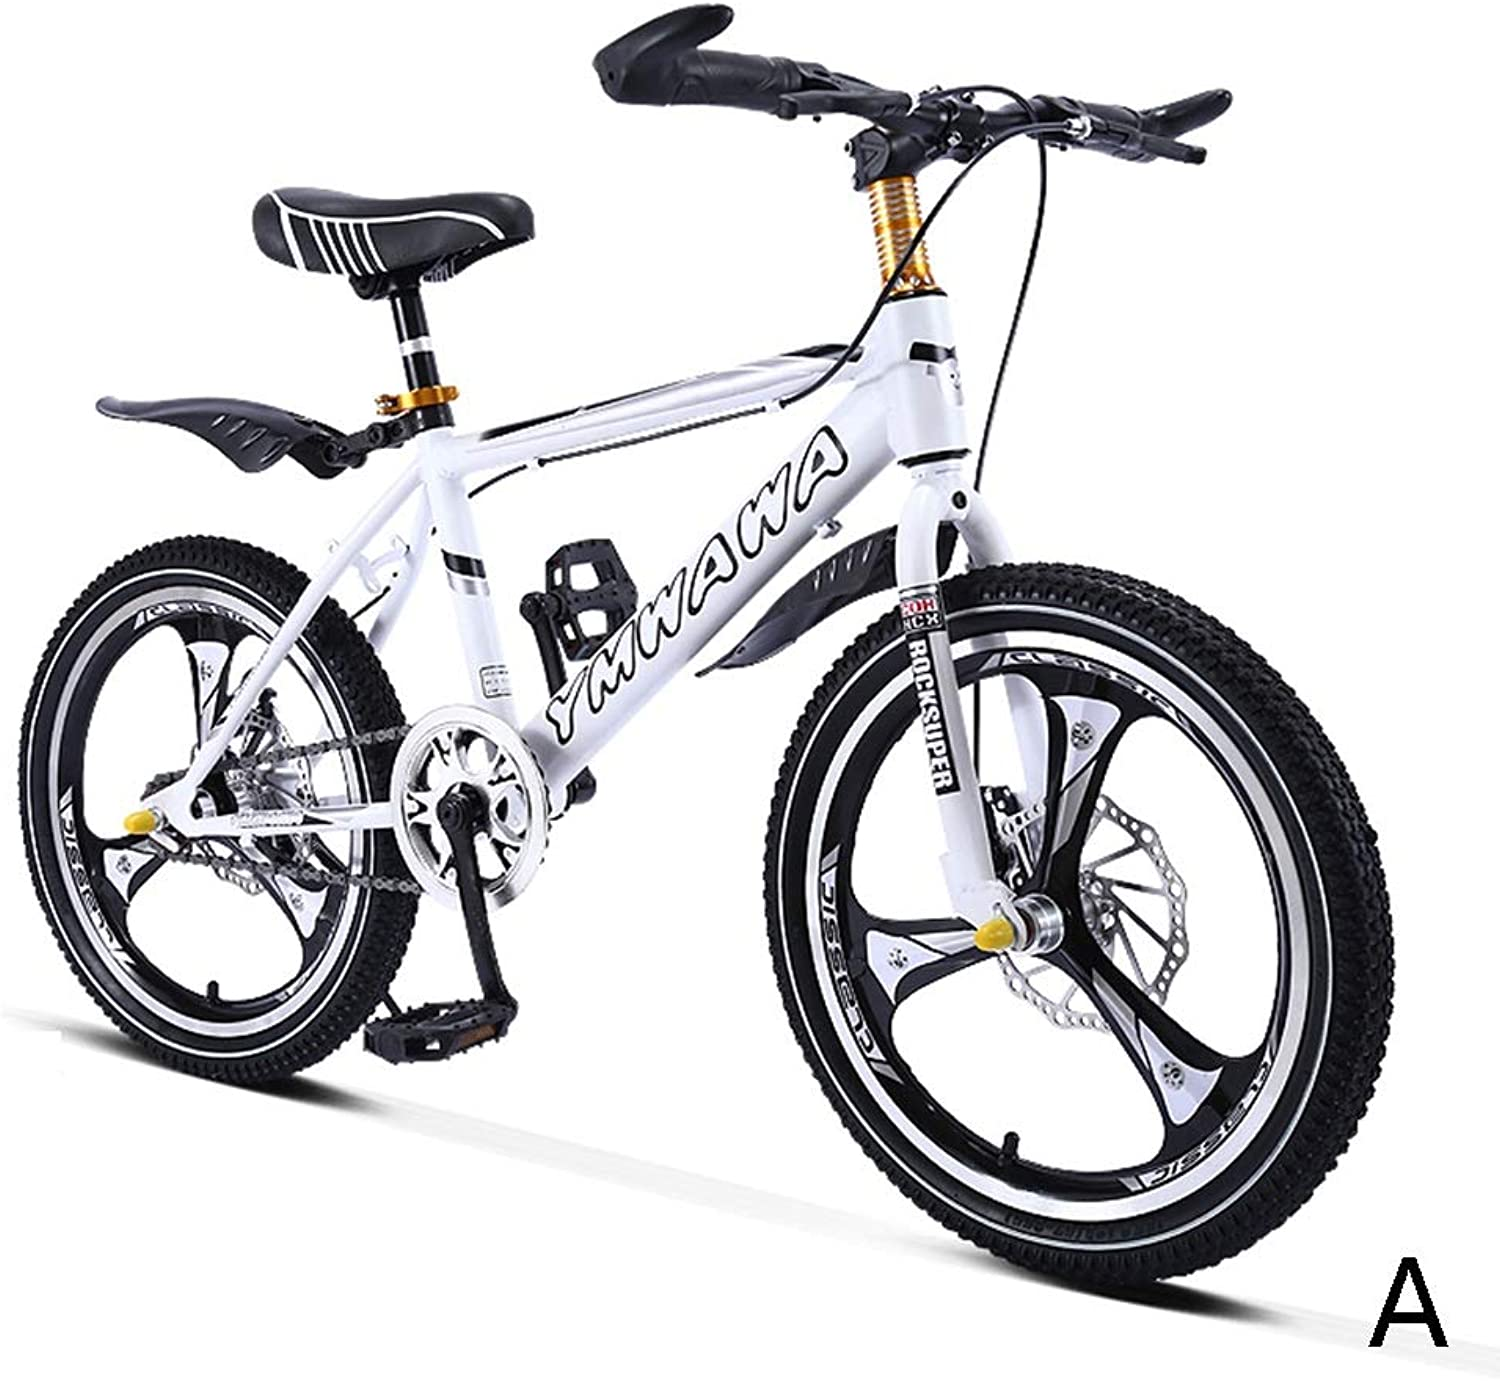 Kids' Bikes Bicycle Student Bicycle Single Speed Mountain Bike boy Bicycle Girl Bicycle 18 inch, one Wheel, high Carbon Steel Frame (color   A, Size   18inches)